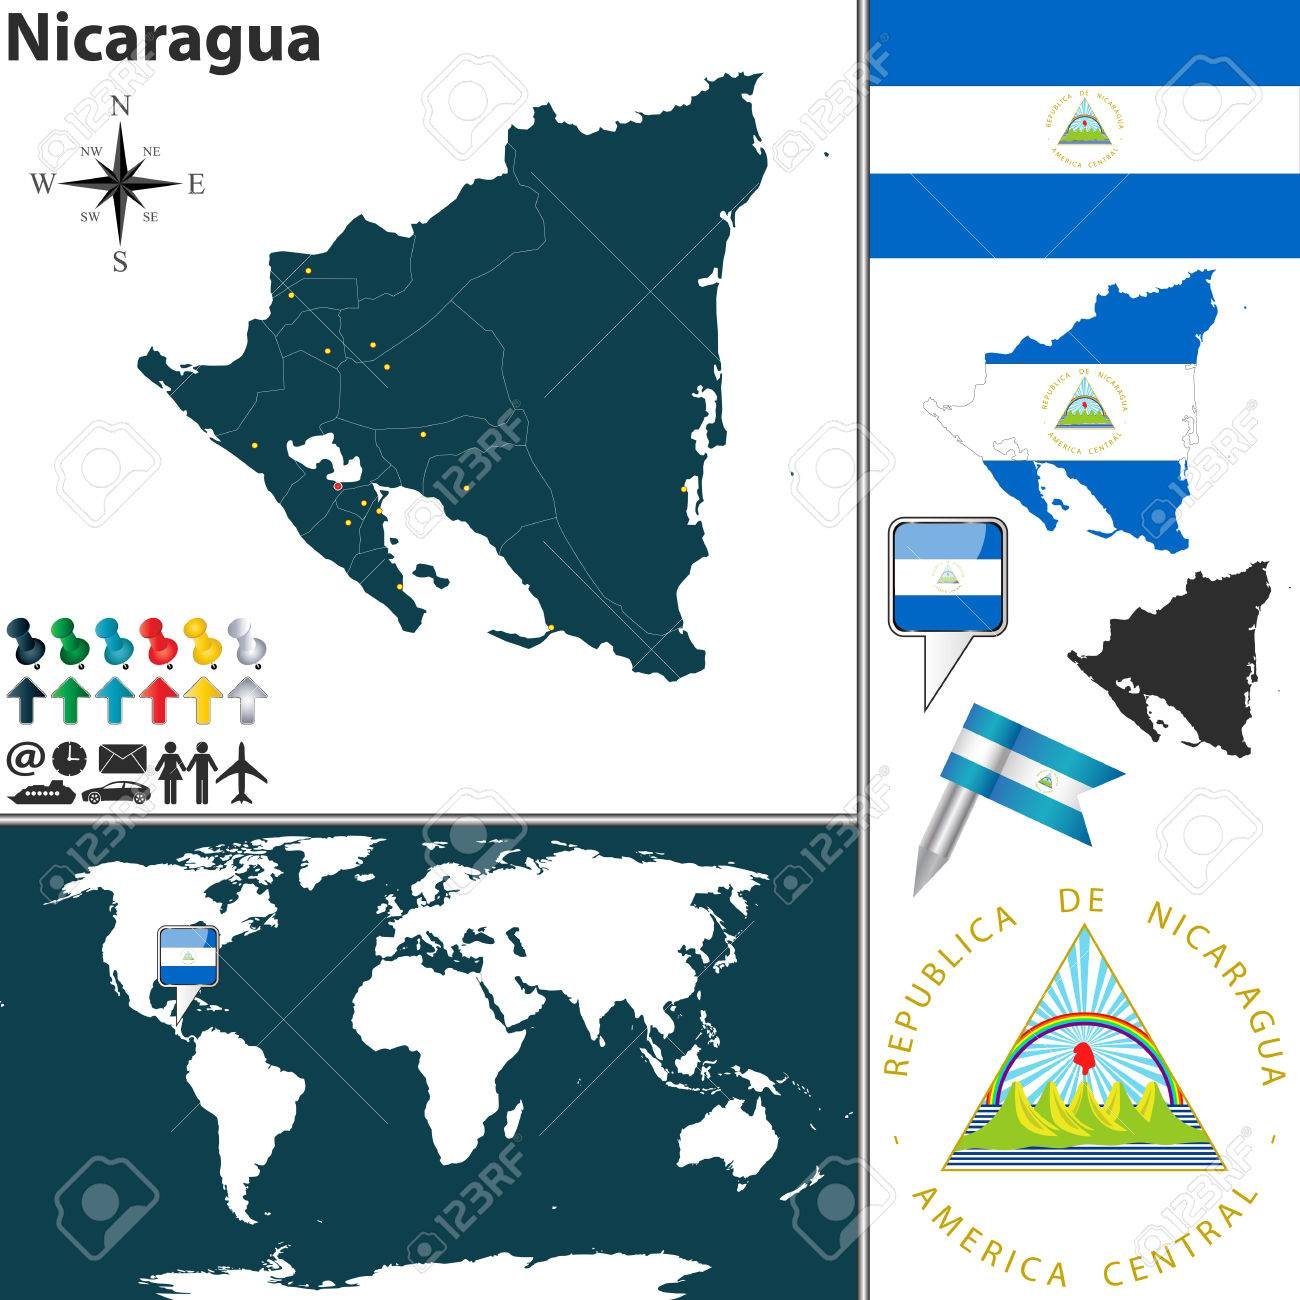 Where Is Nicaragua Located On A World Map.Map Of Nicaragua With Regions Coat Of Arms And Location On World